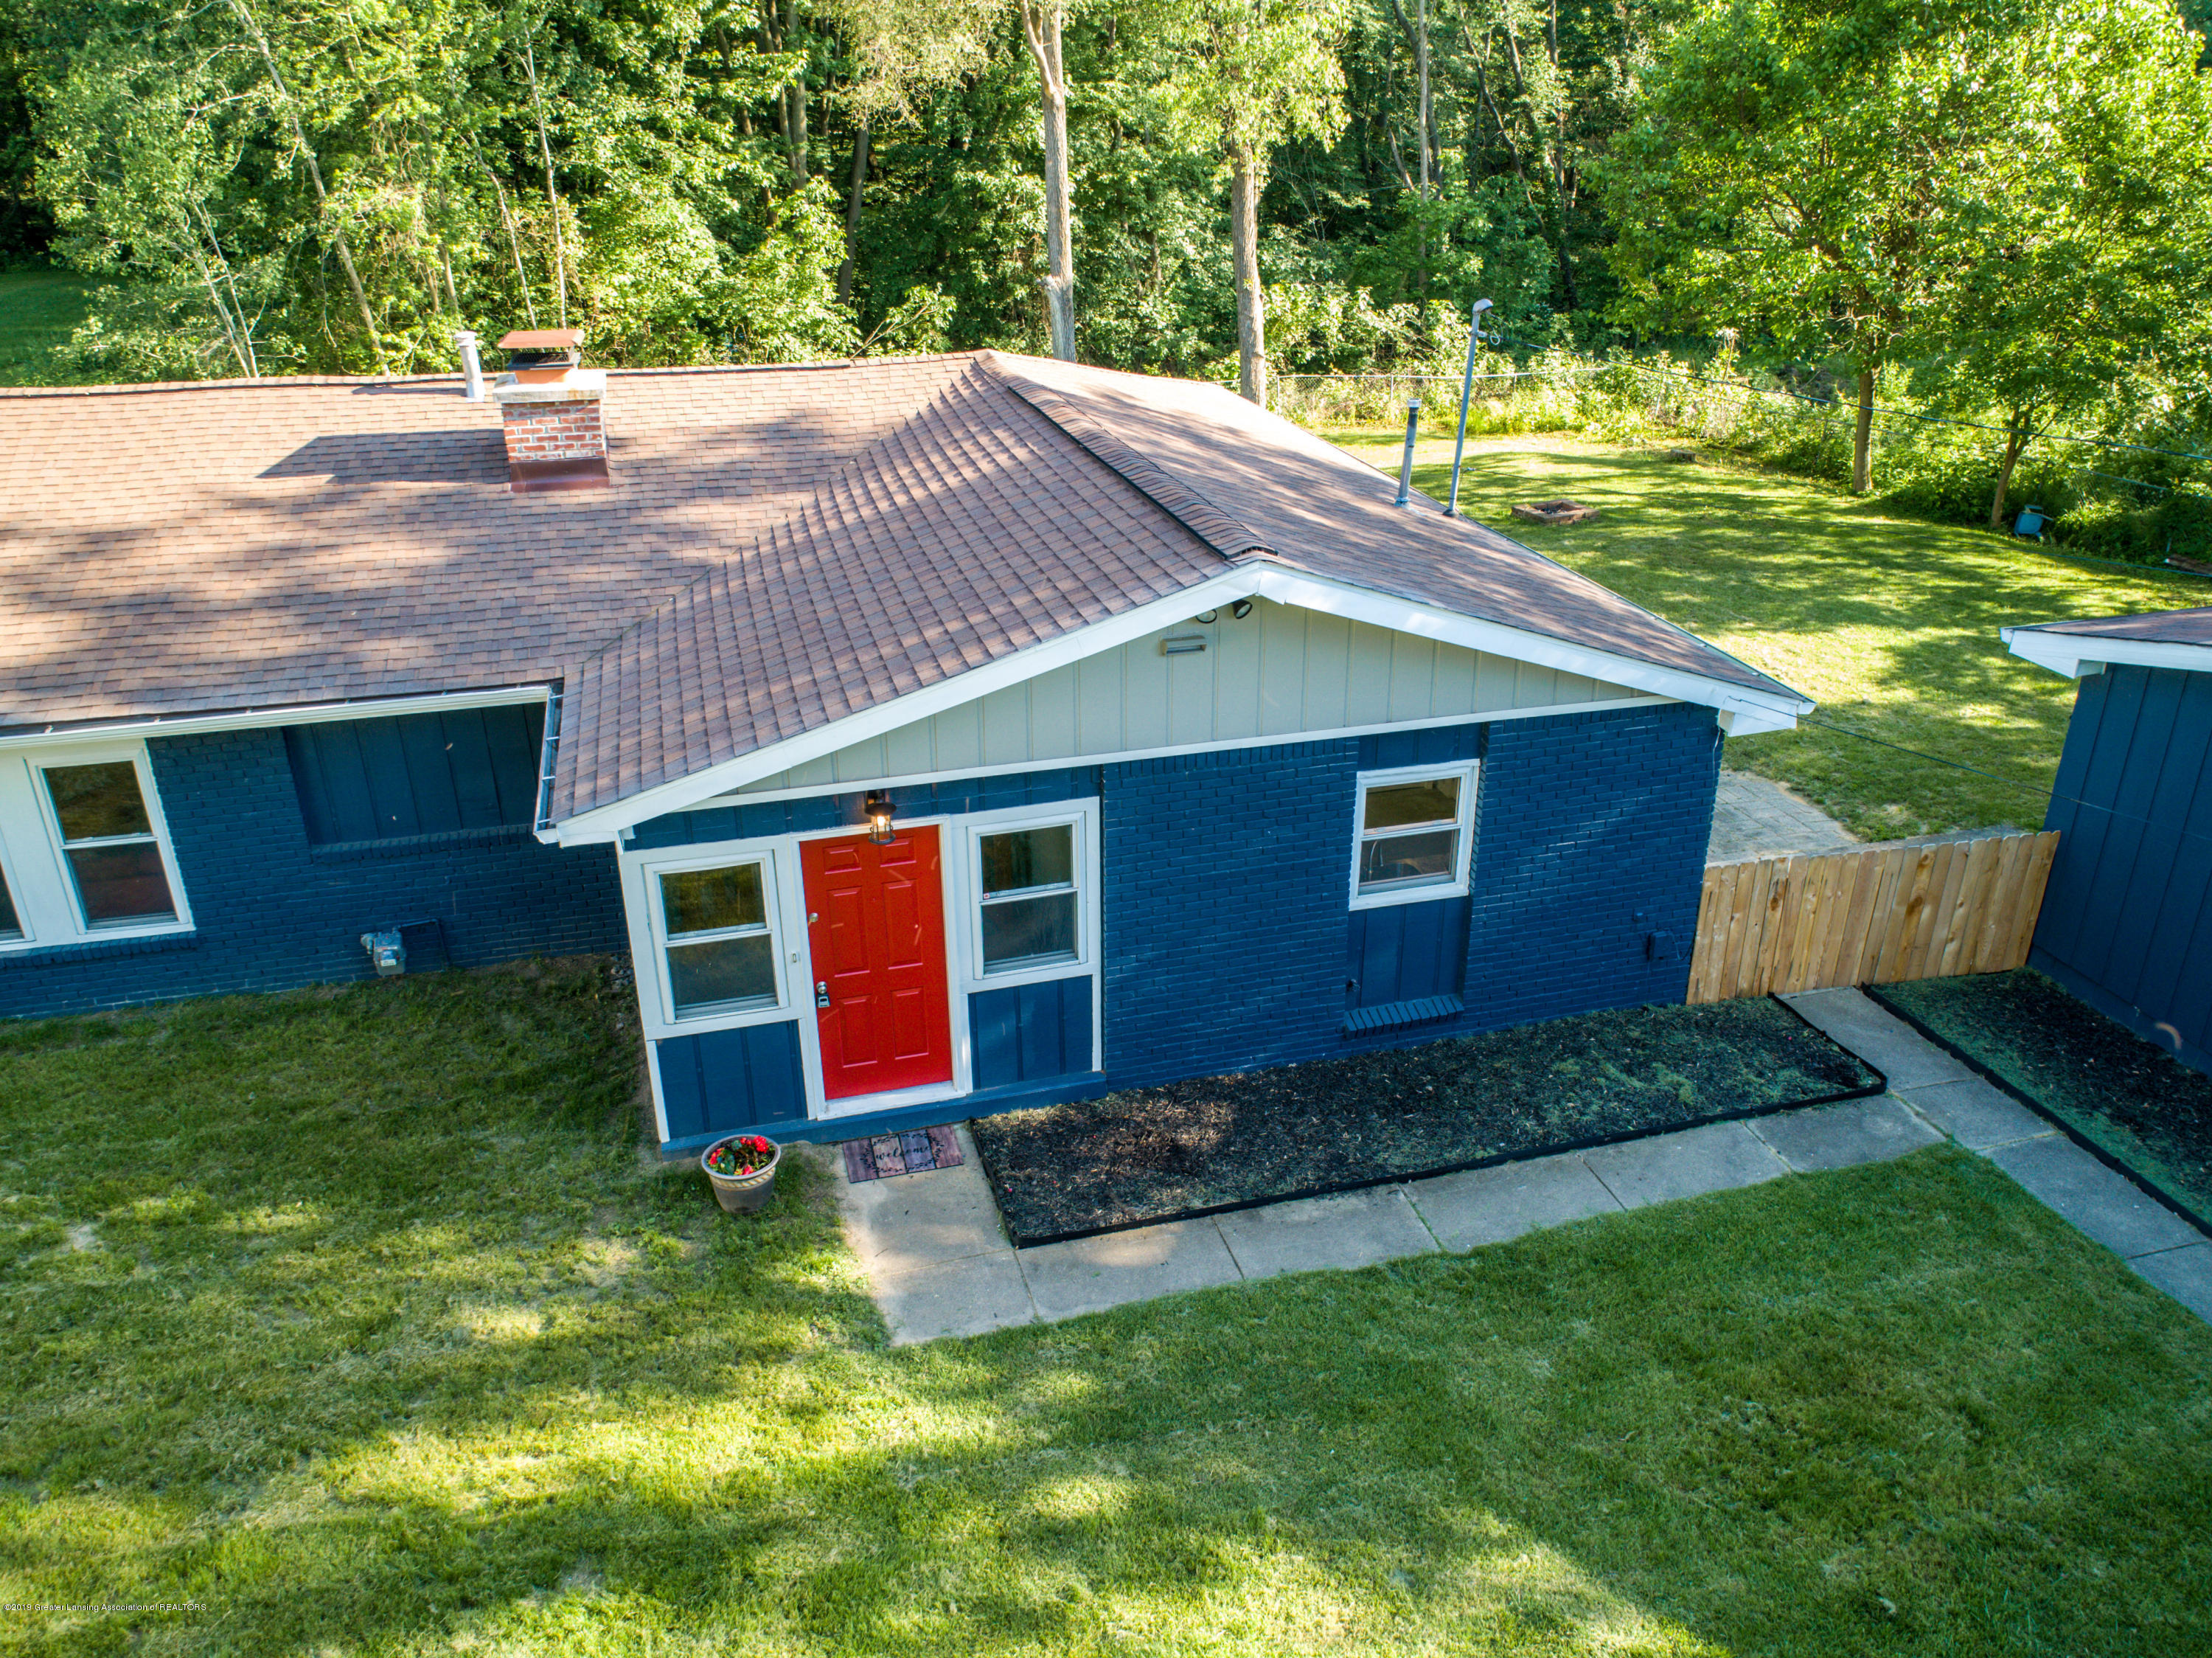 4565 Sycamore St - 20190618-DJI_0026 - 6